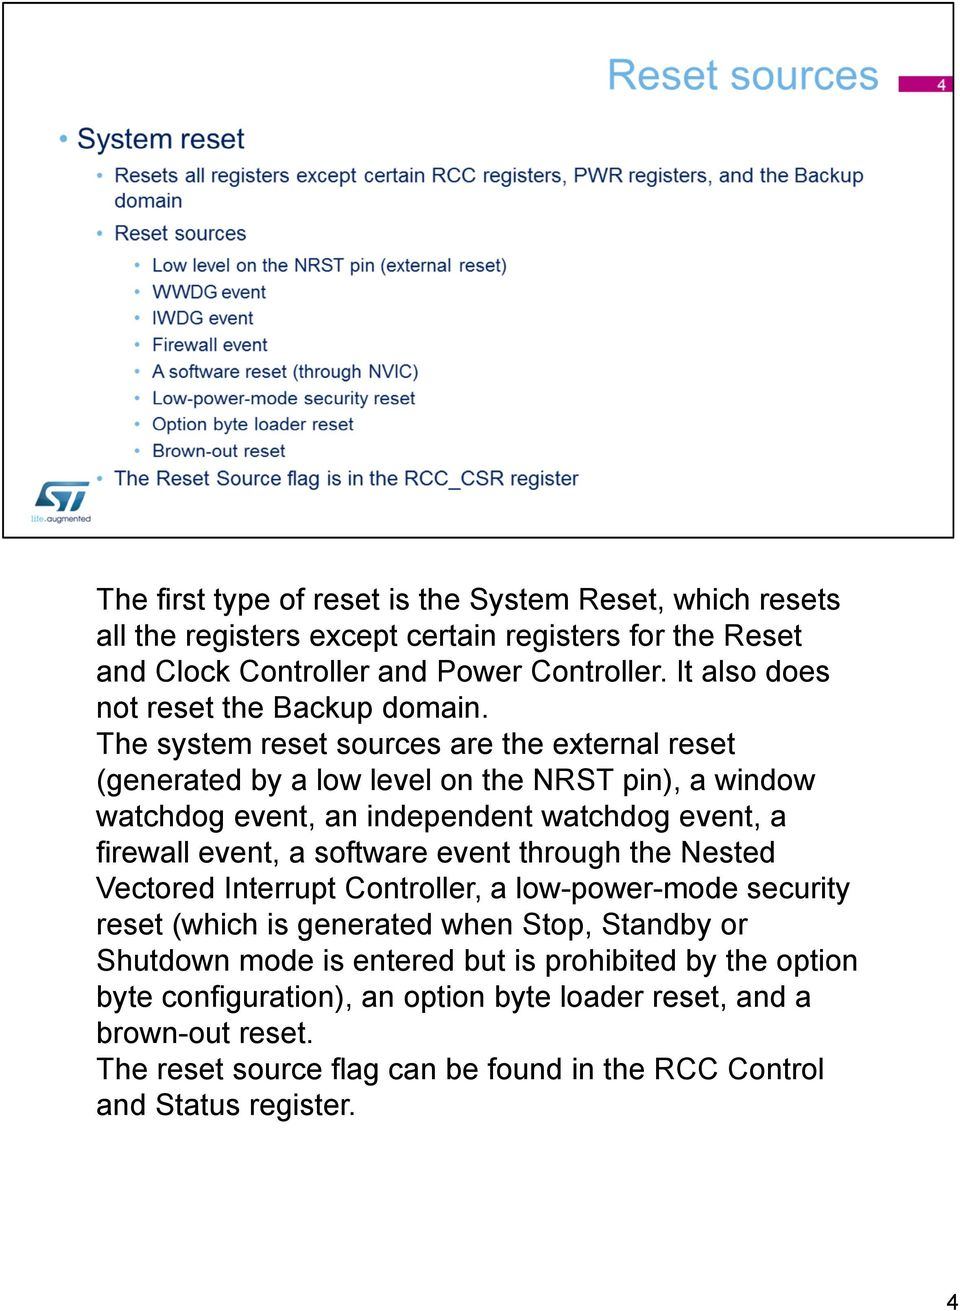 The system reset sources are the external reset (generated by a low level on the NRST pin), a window watchdog event, an independent watchdog event, a firewall event, a software